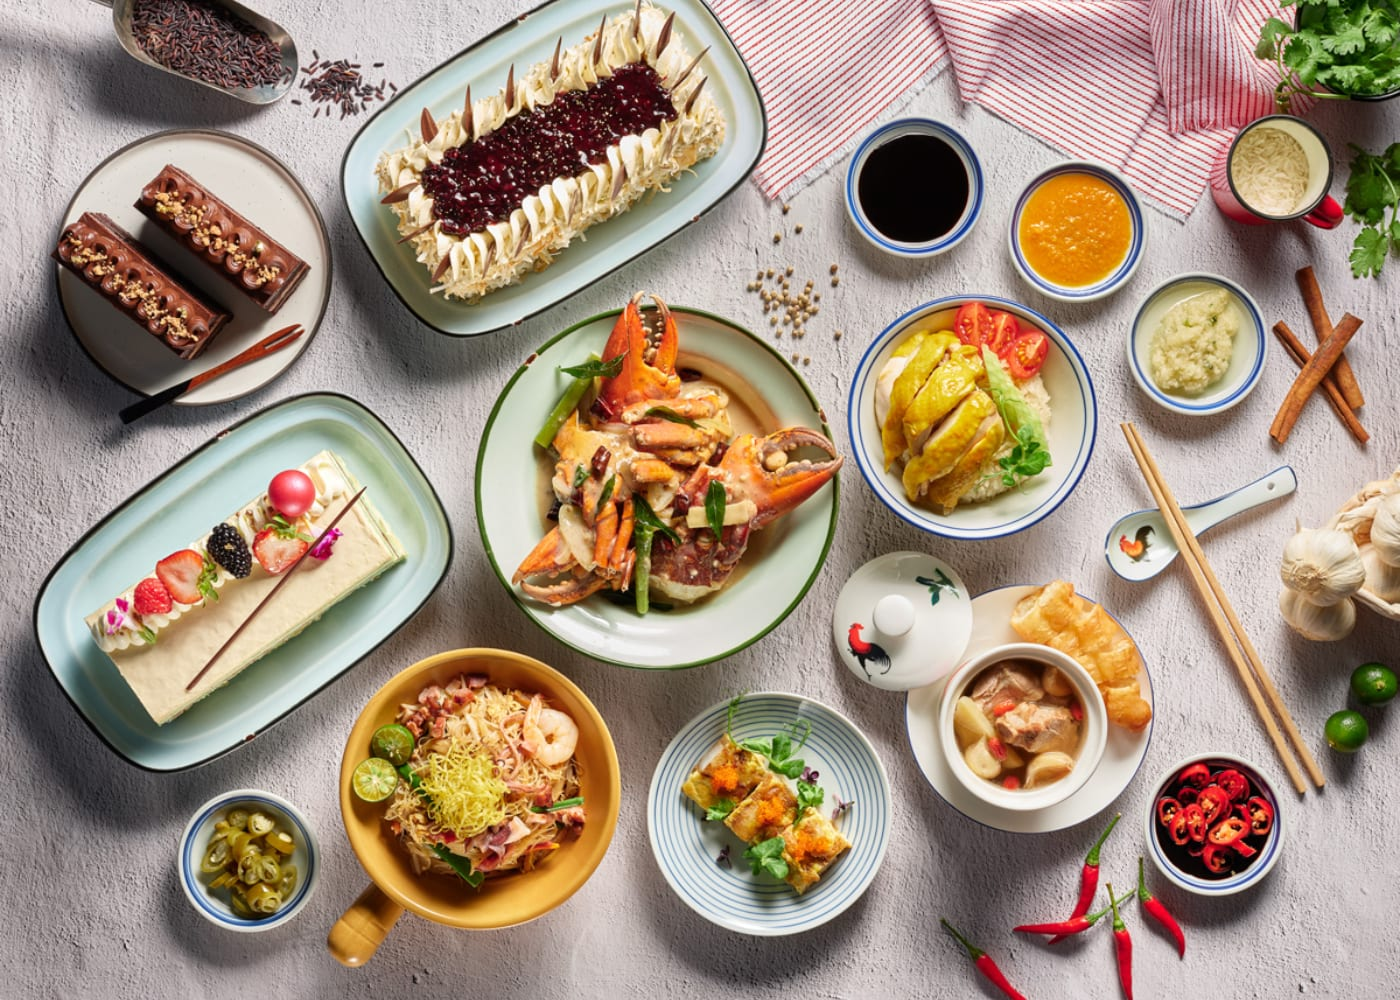 SG54 feasts! Enjoy a taste of Singapore this National Day 2019